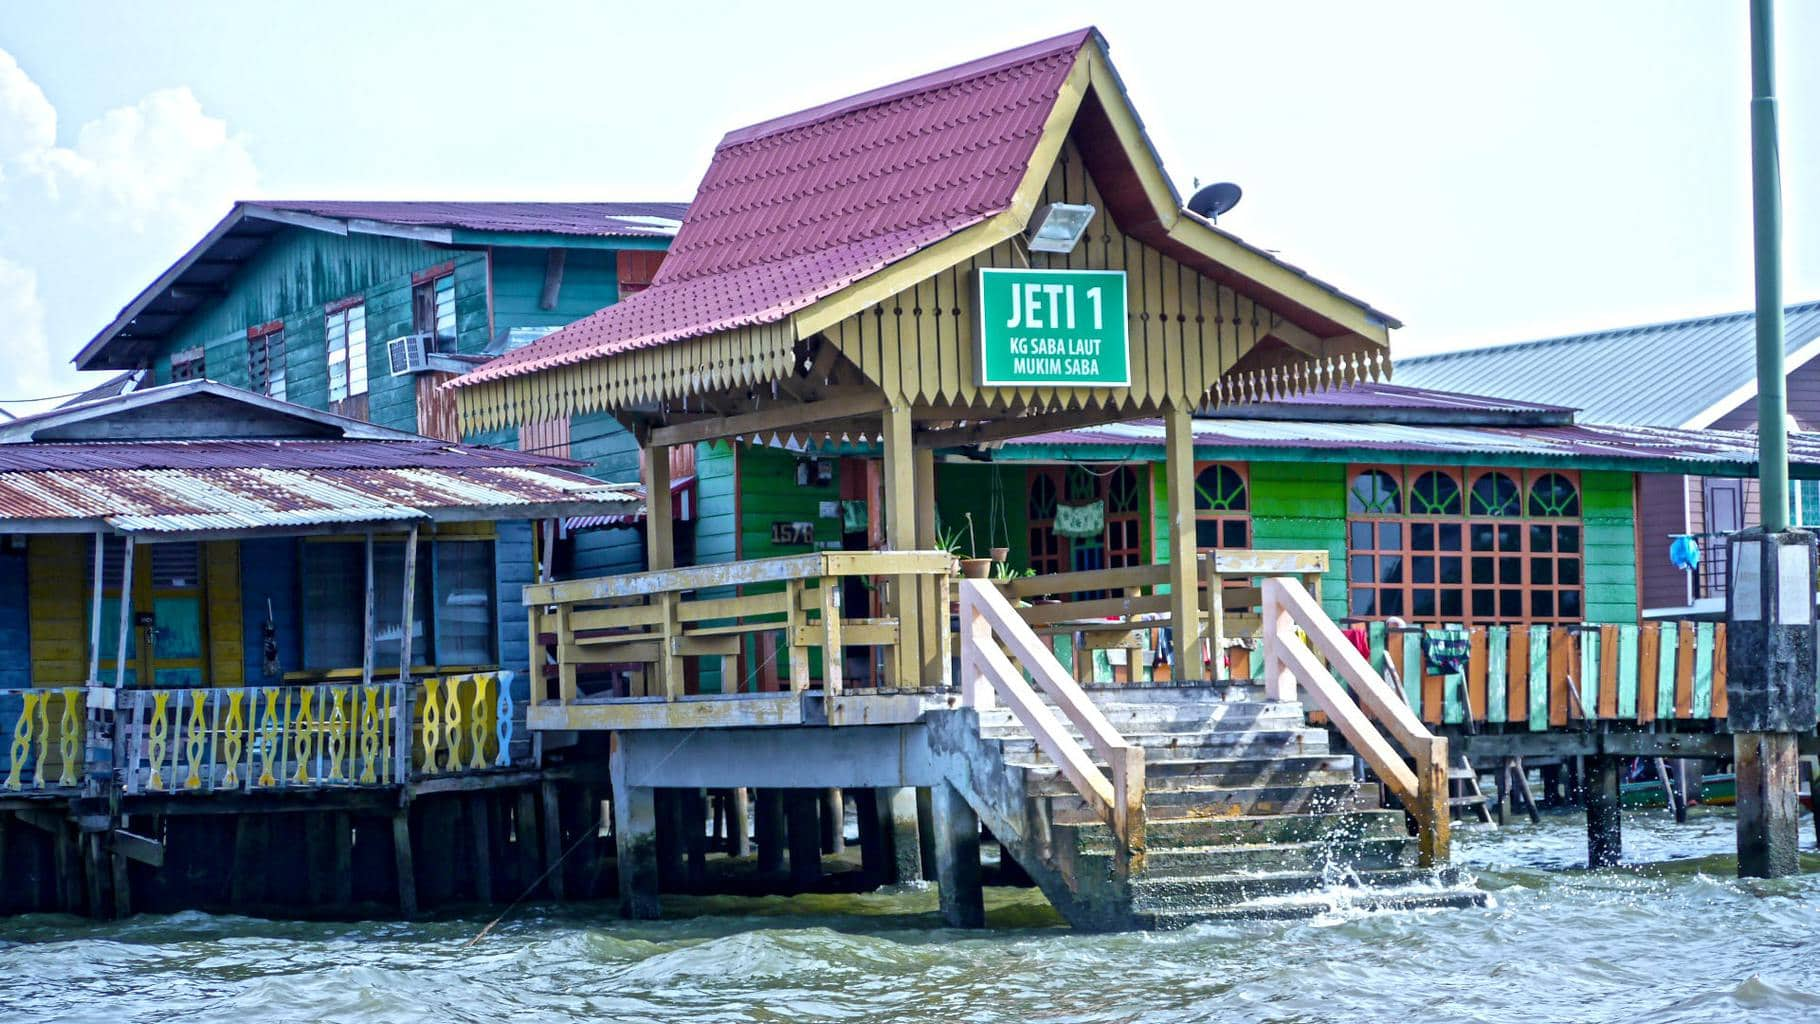 Arrival jetty at Kampong Ayer